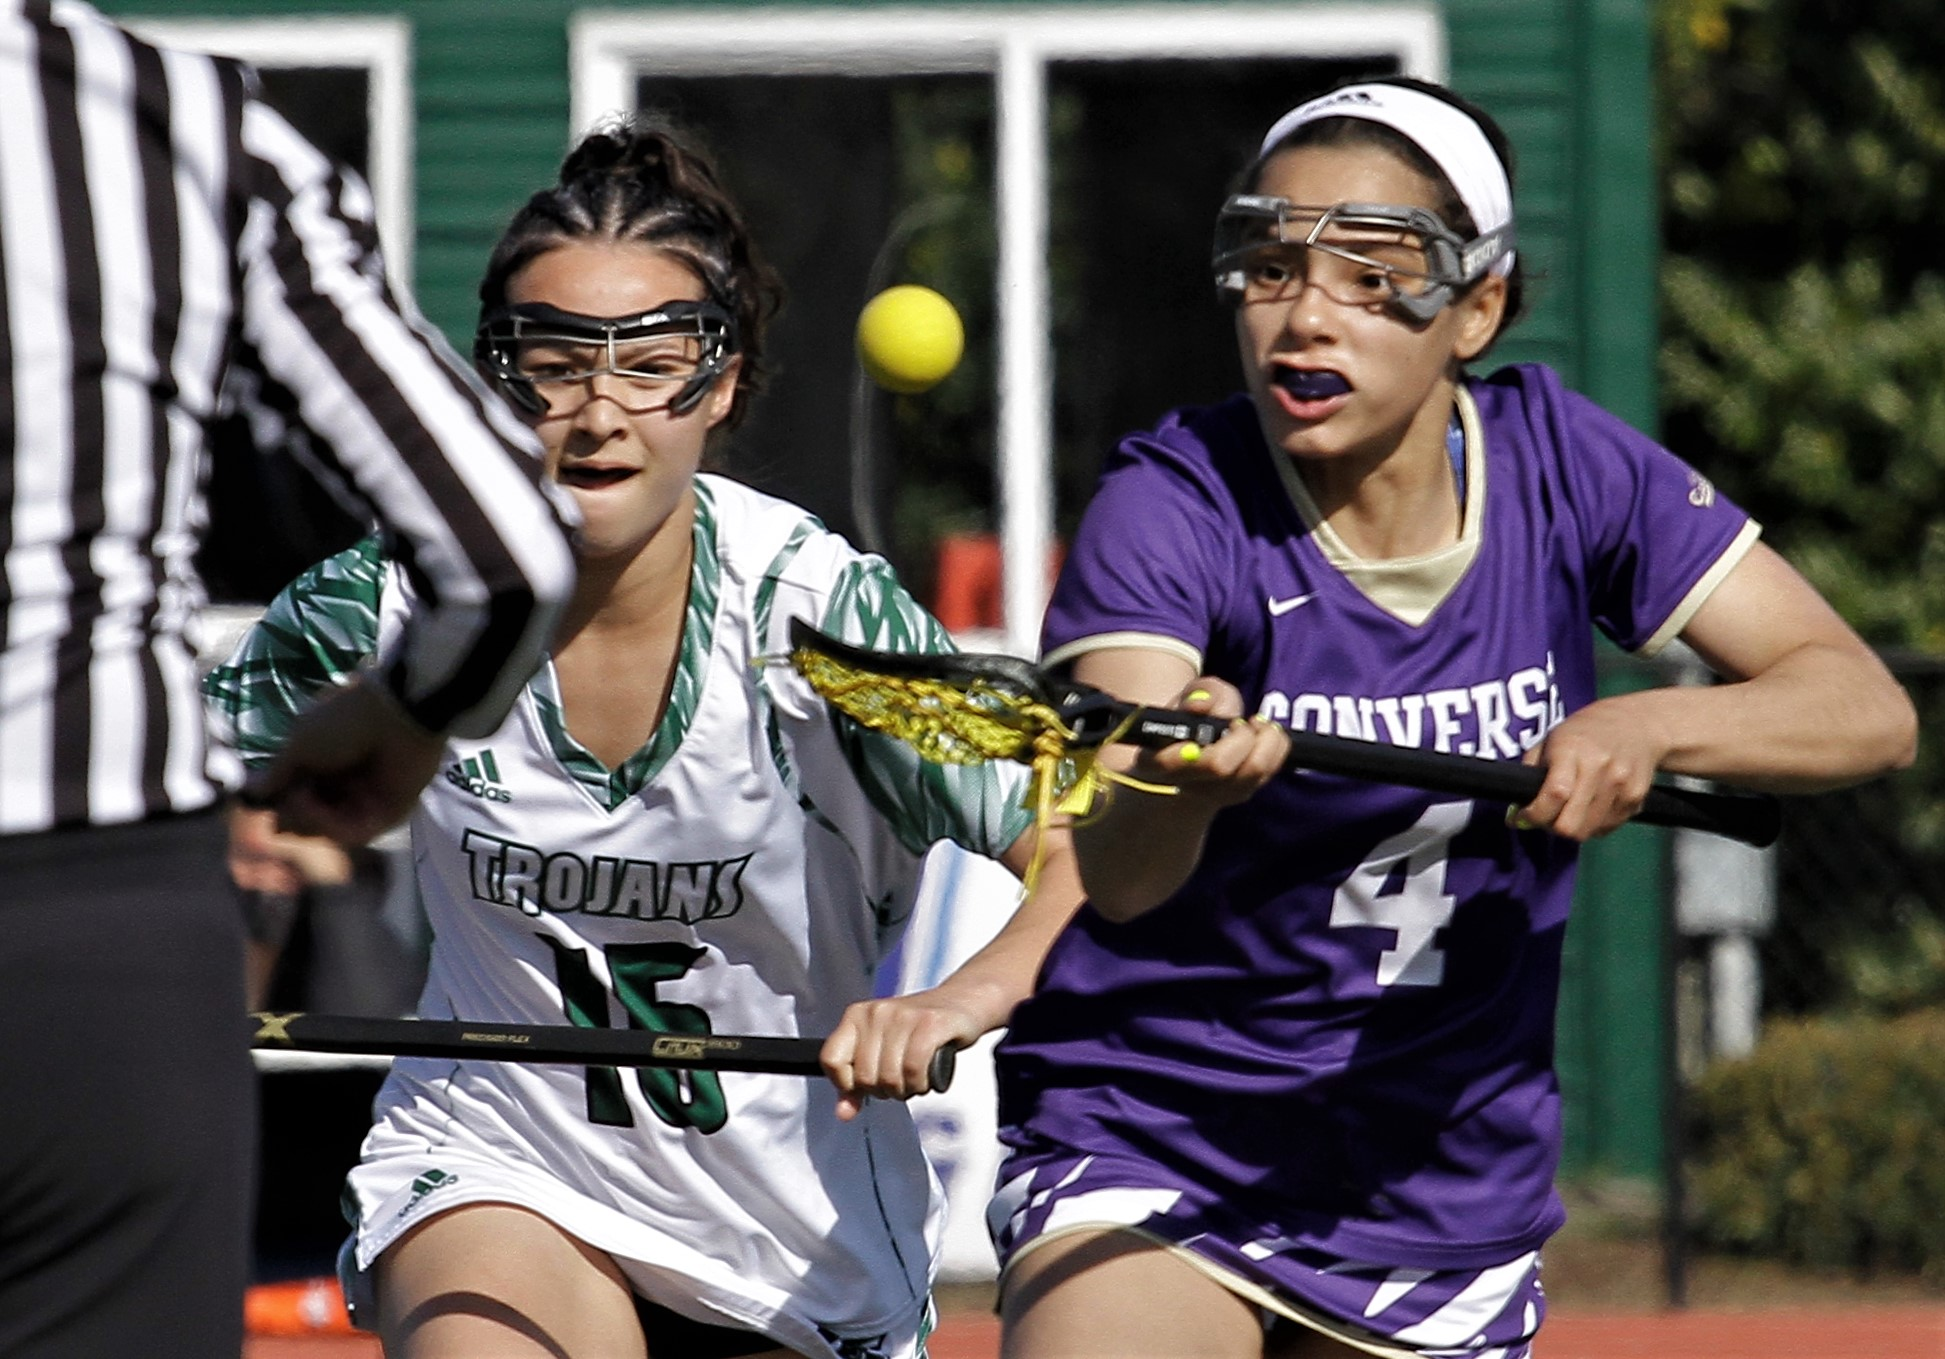 Women's LaCrosse: Converse College At UMO (PHOTO GALLERY)